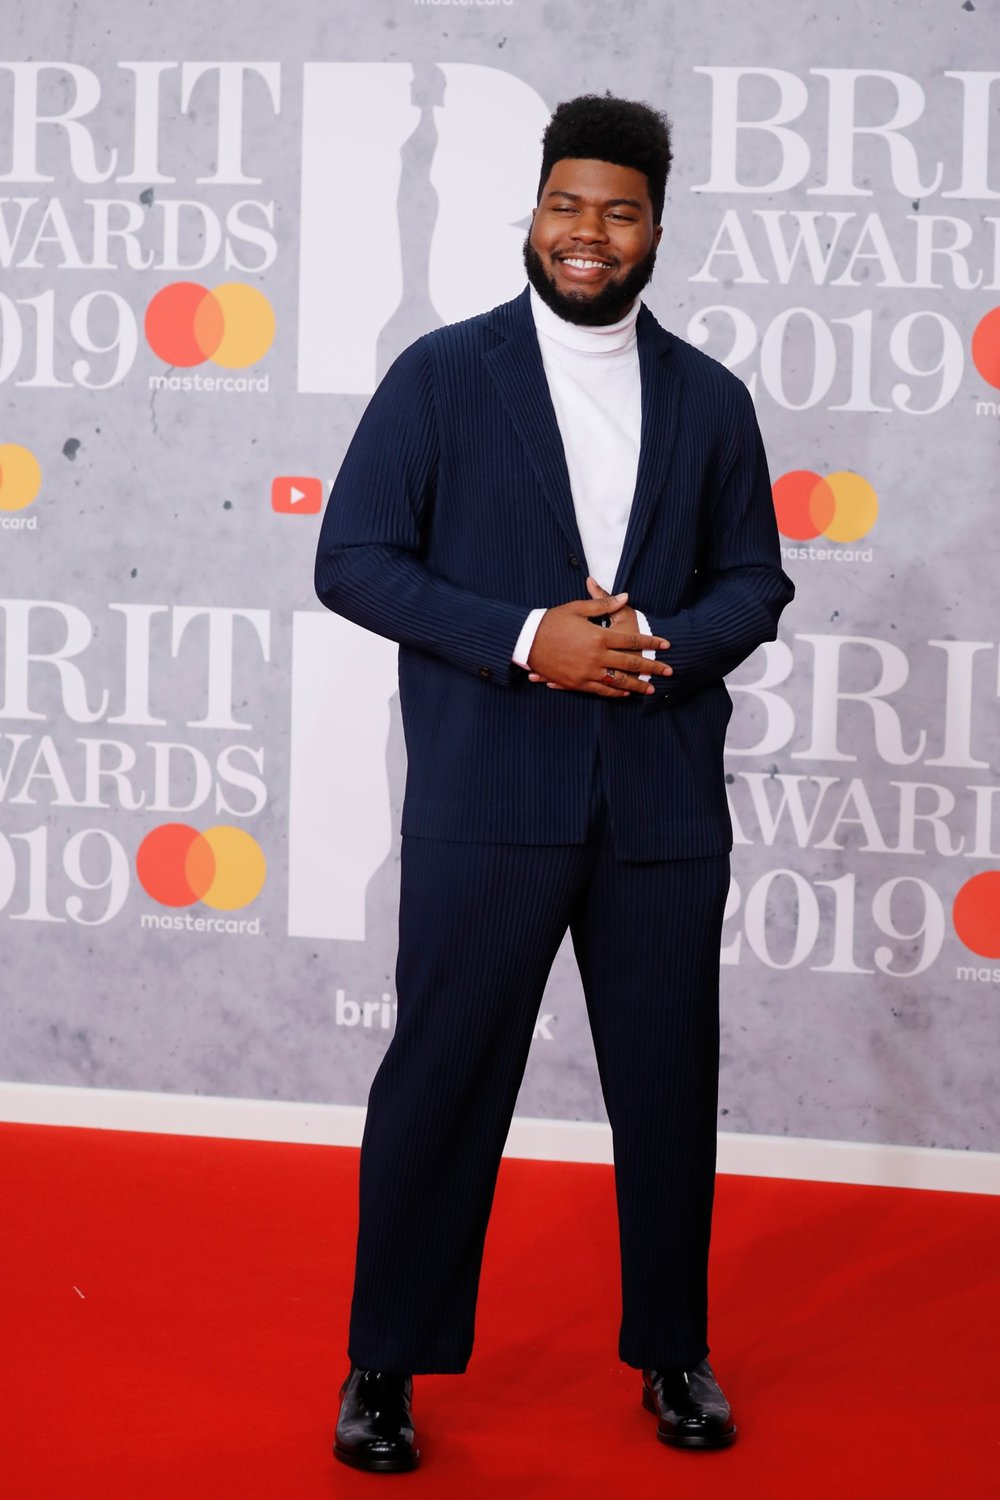 Khalid at the Brit Awards 2019